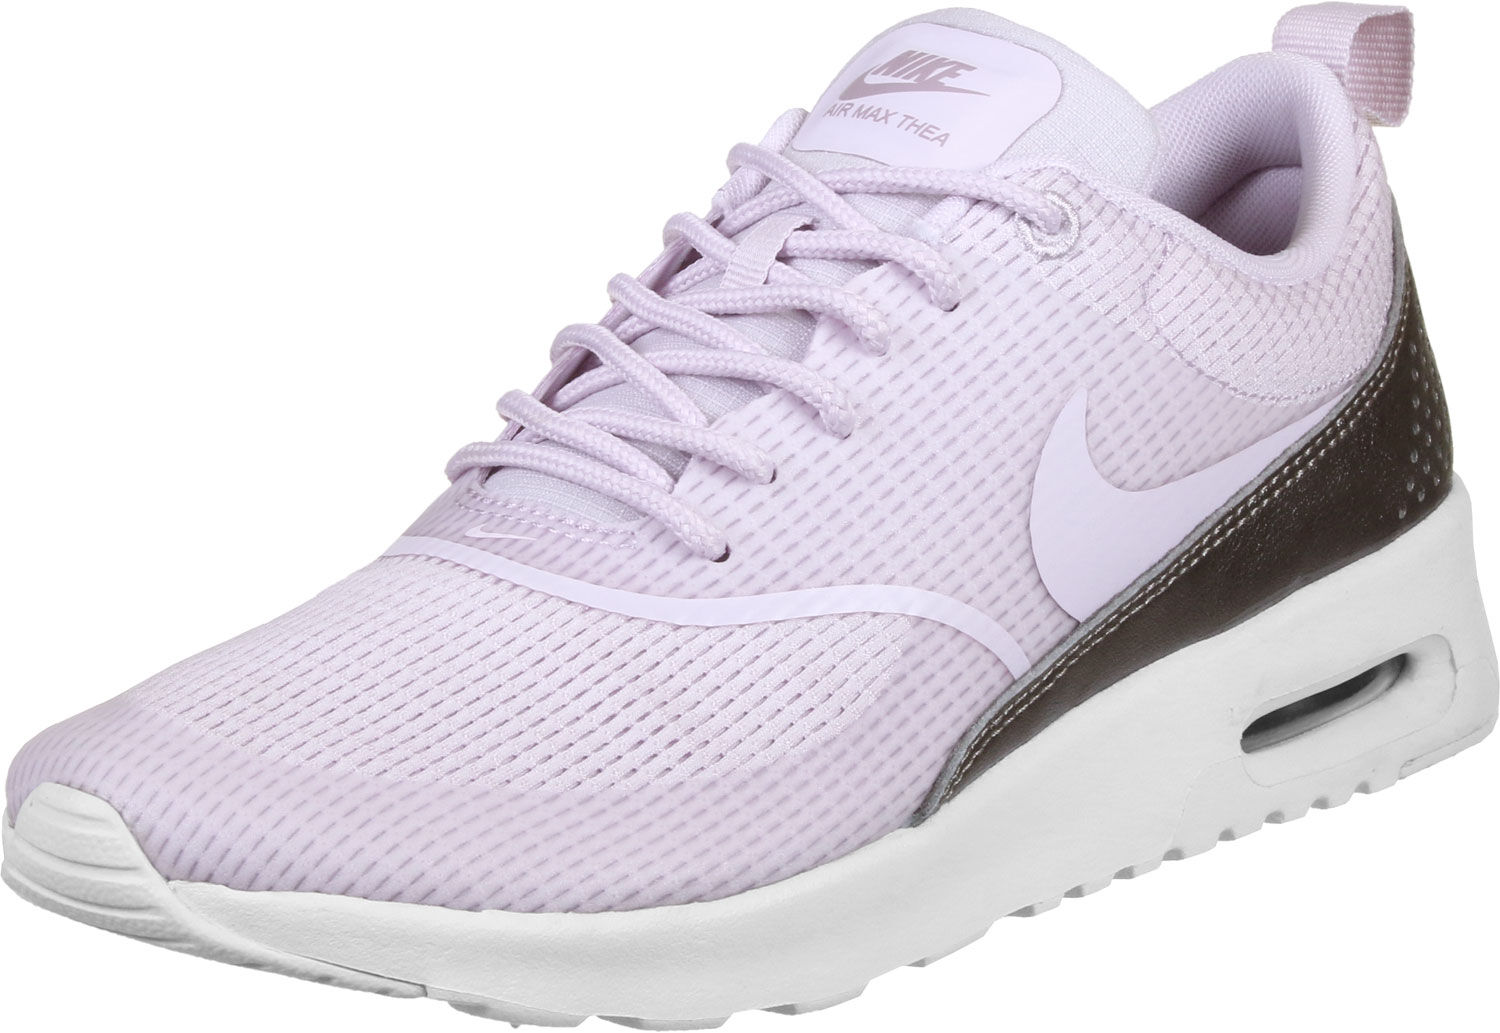 Air Max Thea TXT W Baskets low Femmes chez Stylefile